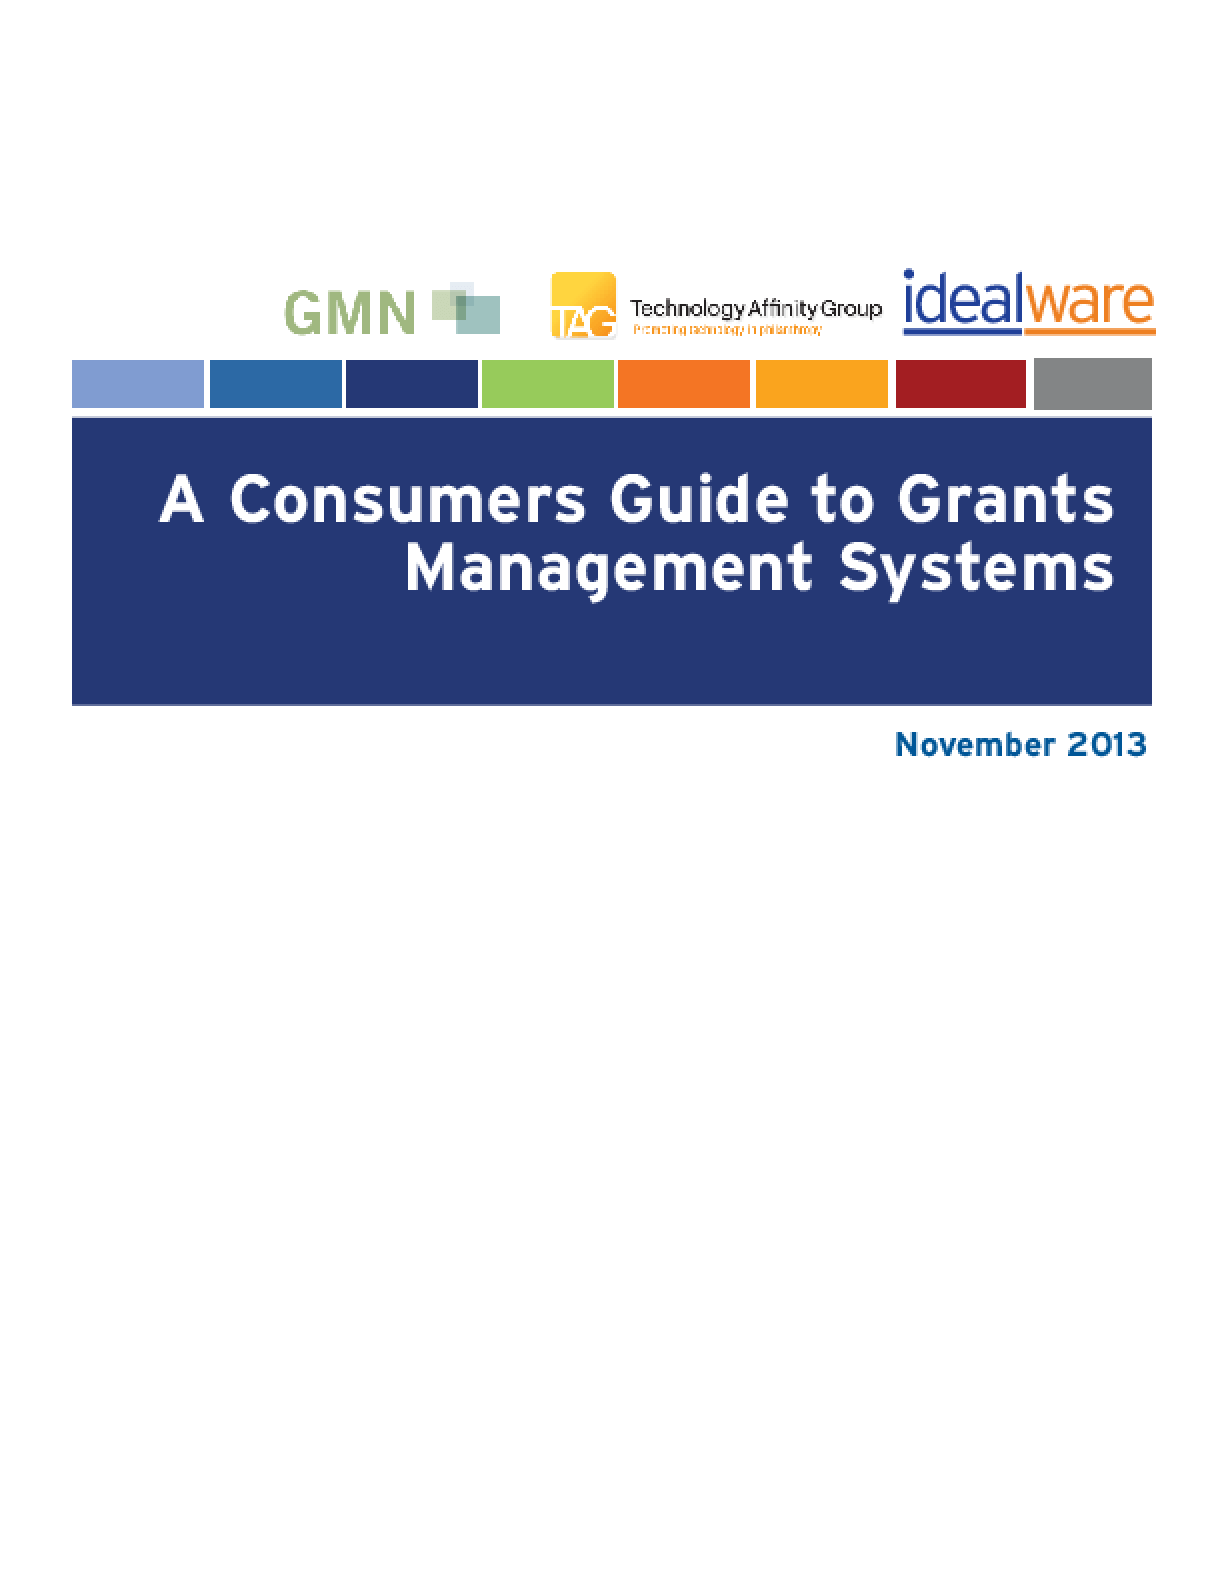 A Consumers Guide to Grants Management Systems